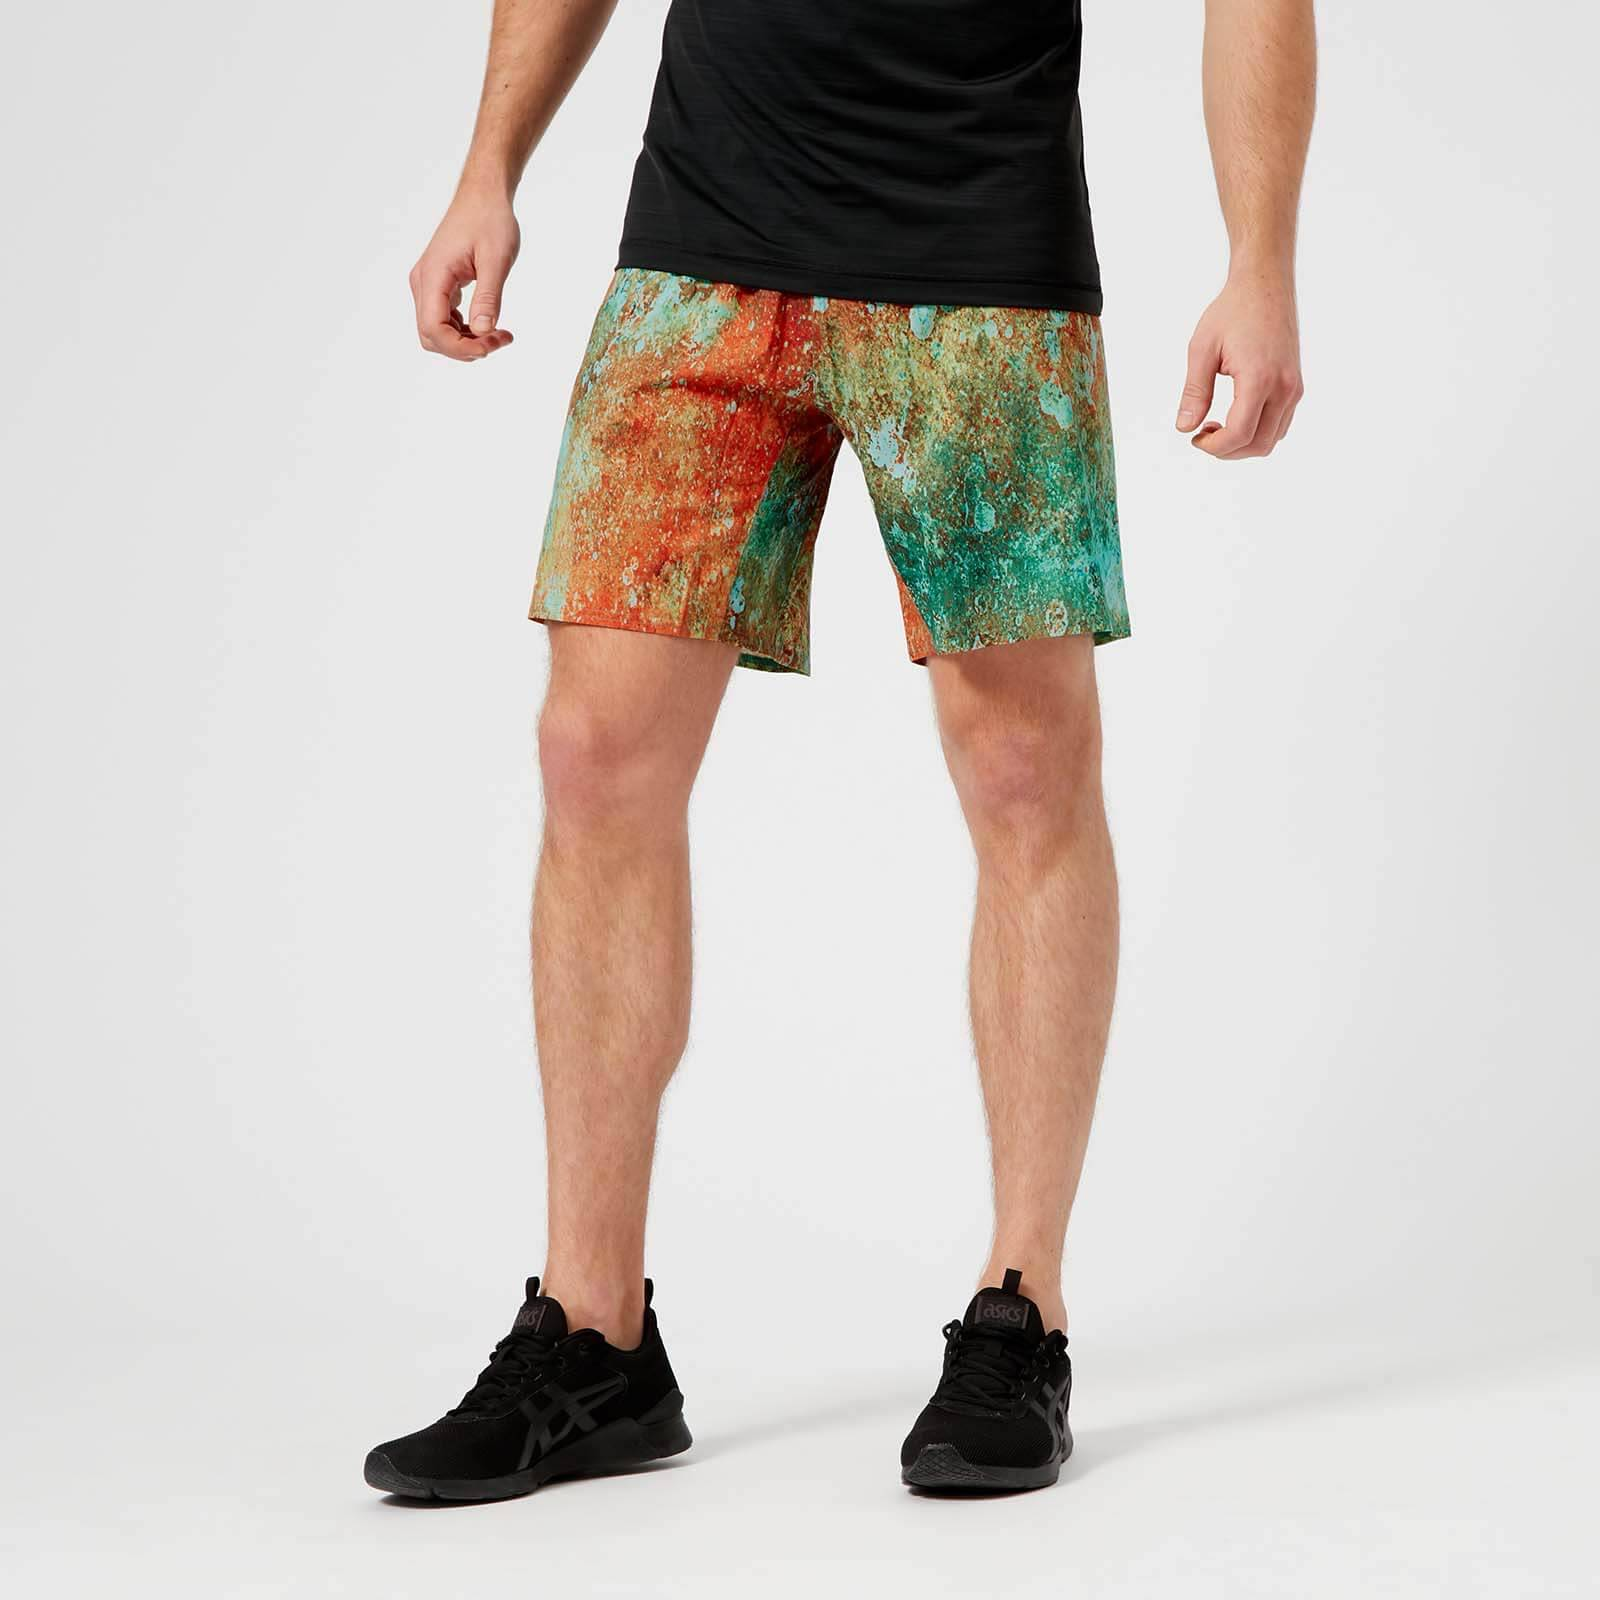 Reebok Men's CrossFit Speed Shorts - Turquoise - S - Multi